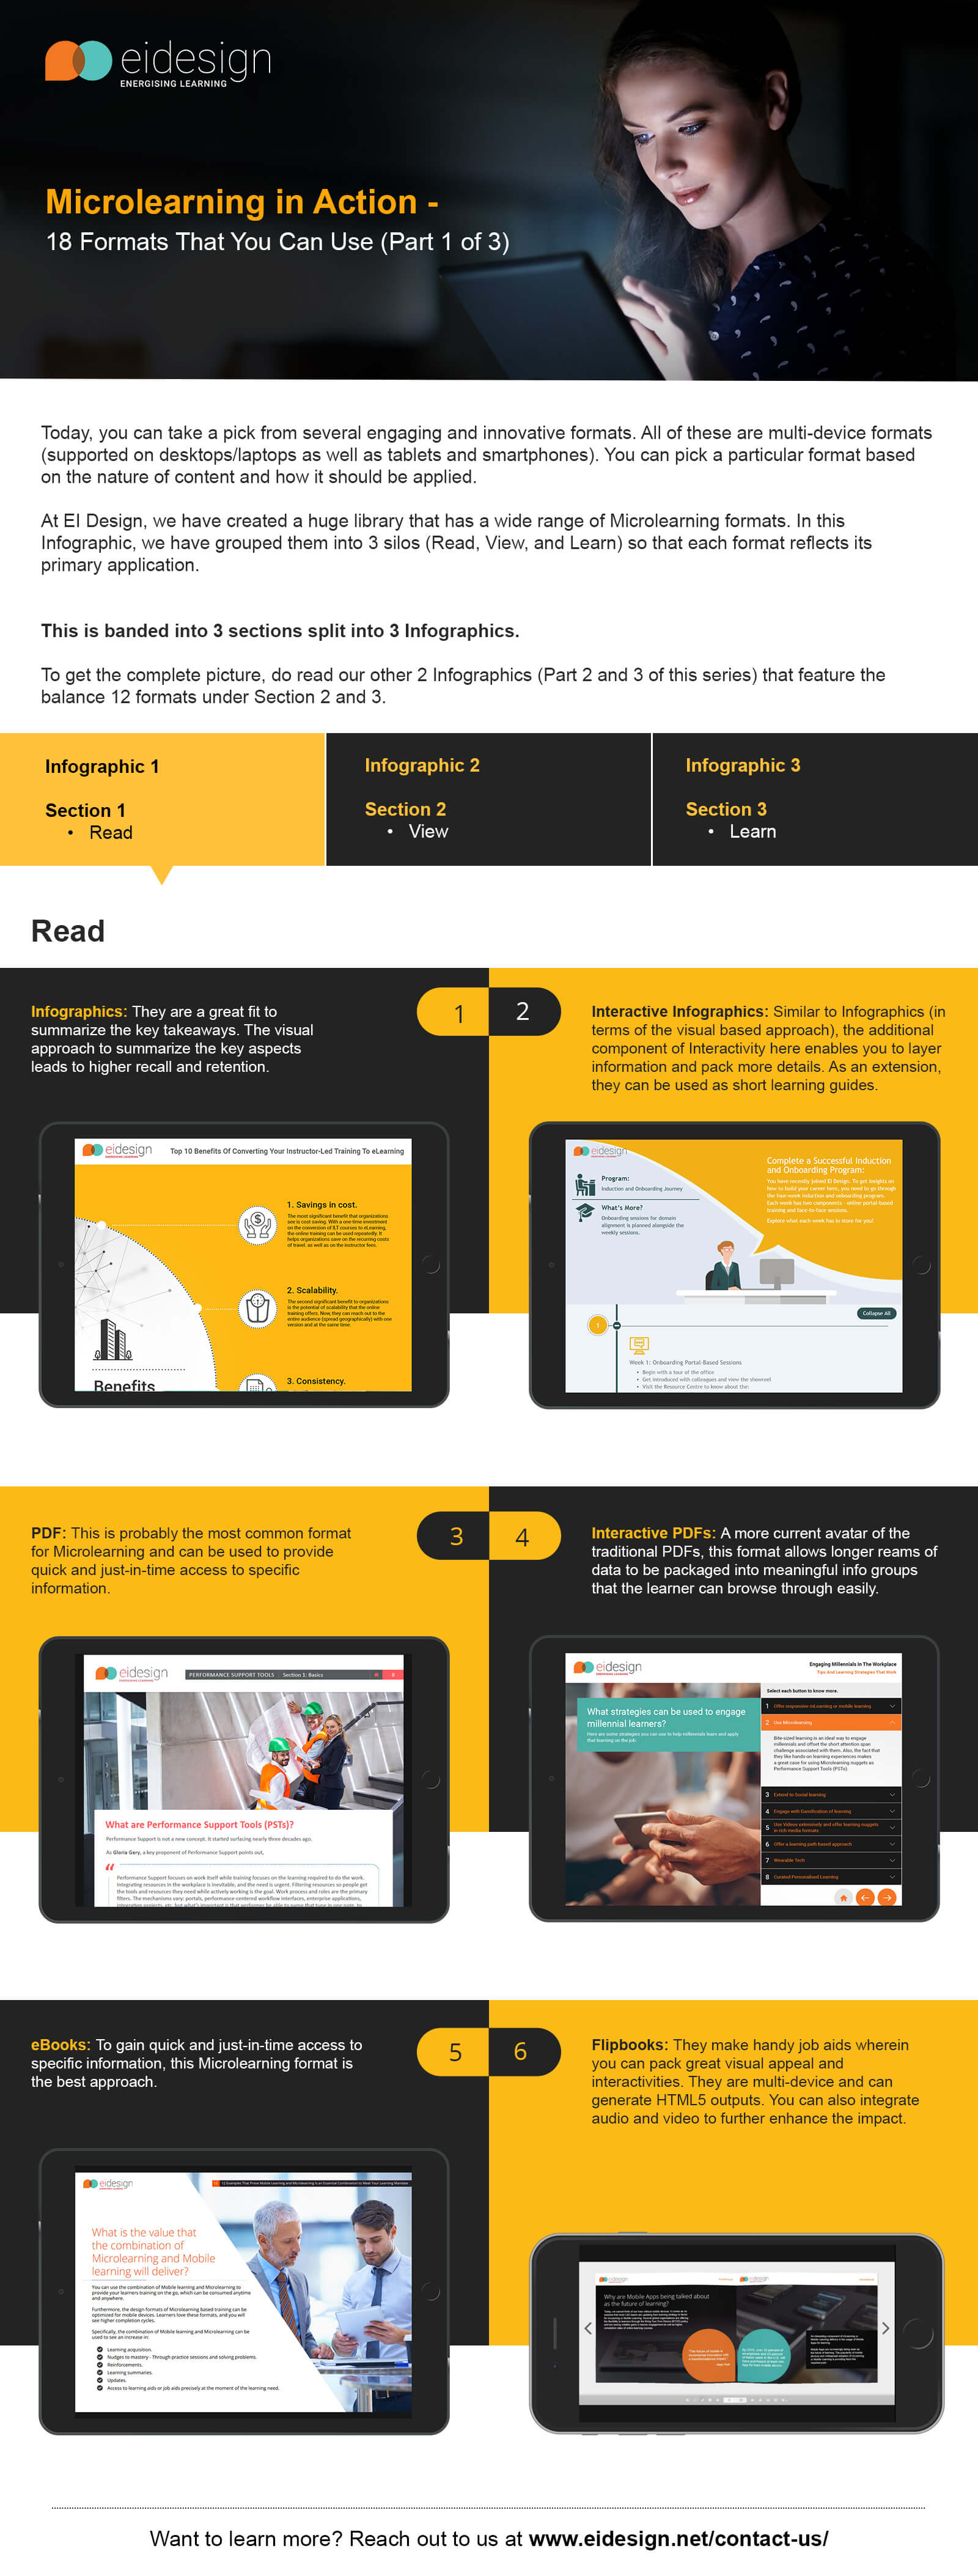 Infographic: 18 Microlearning Formats